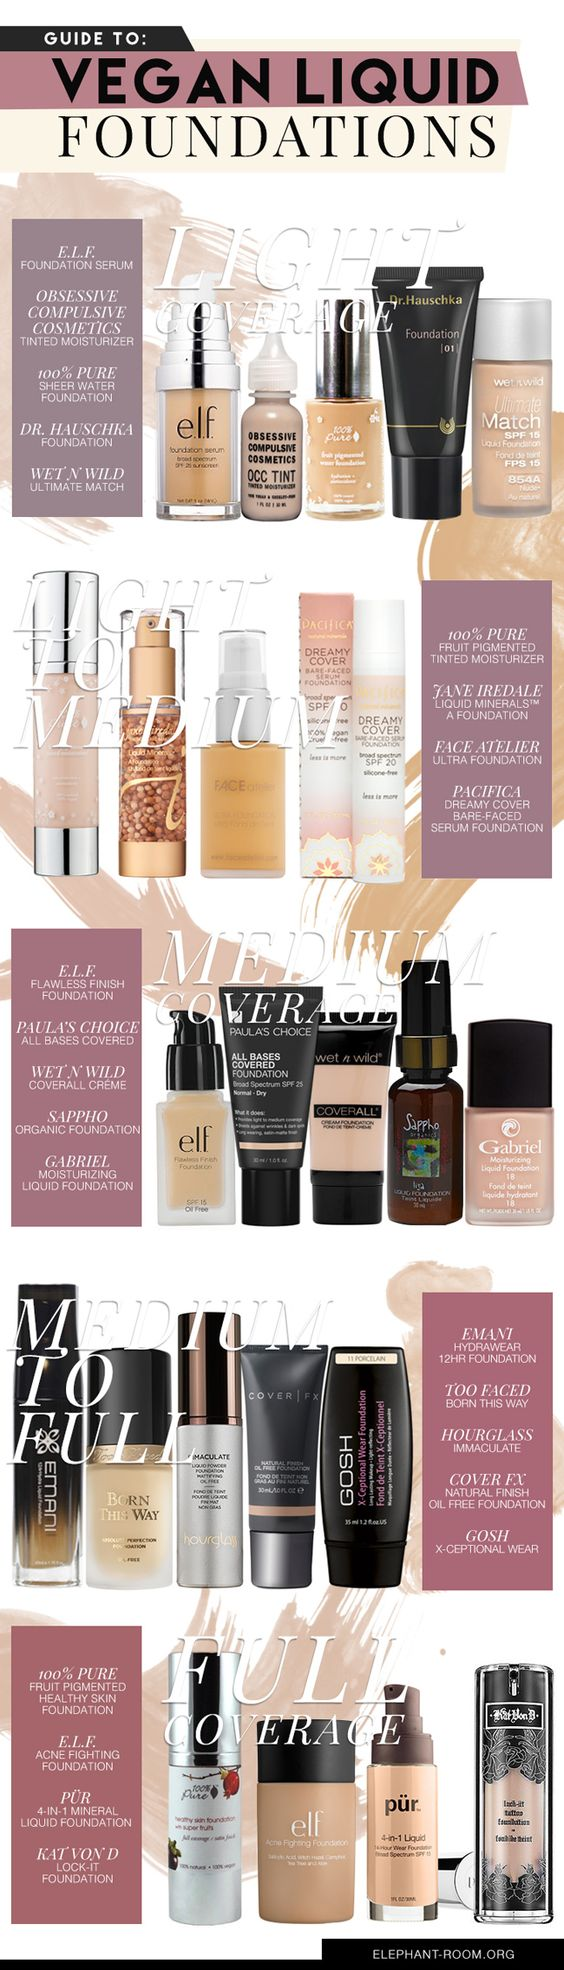 List of Vegan Foundations According to Coverage: